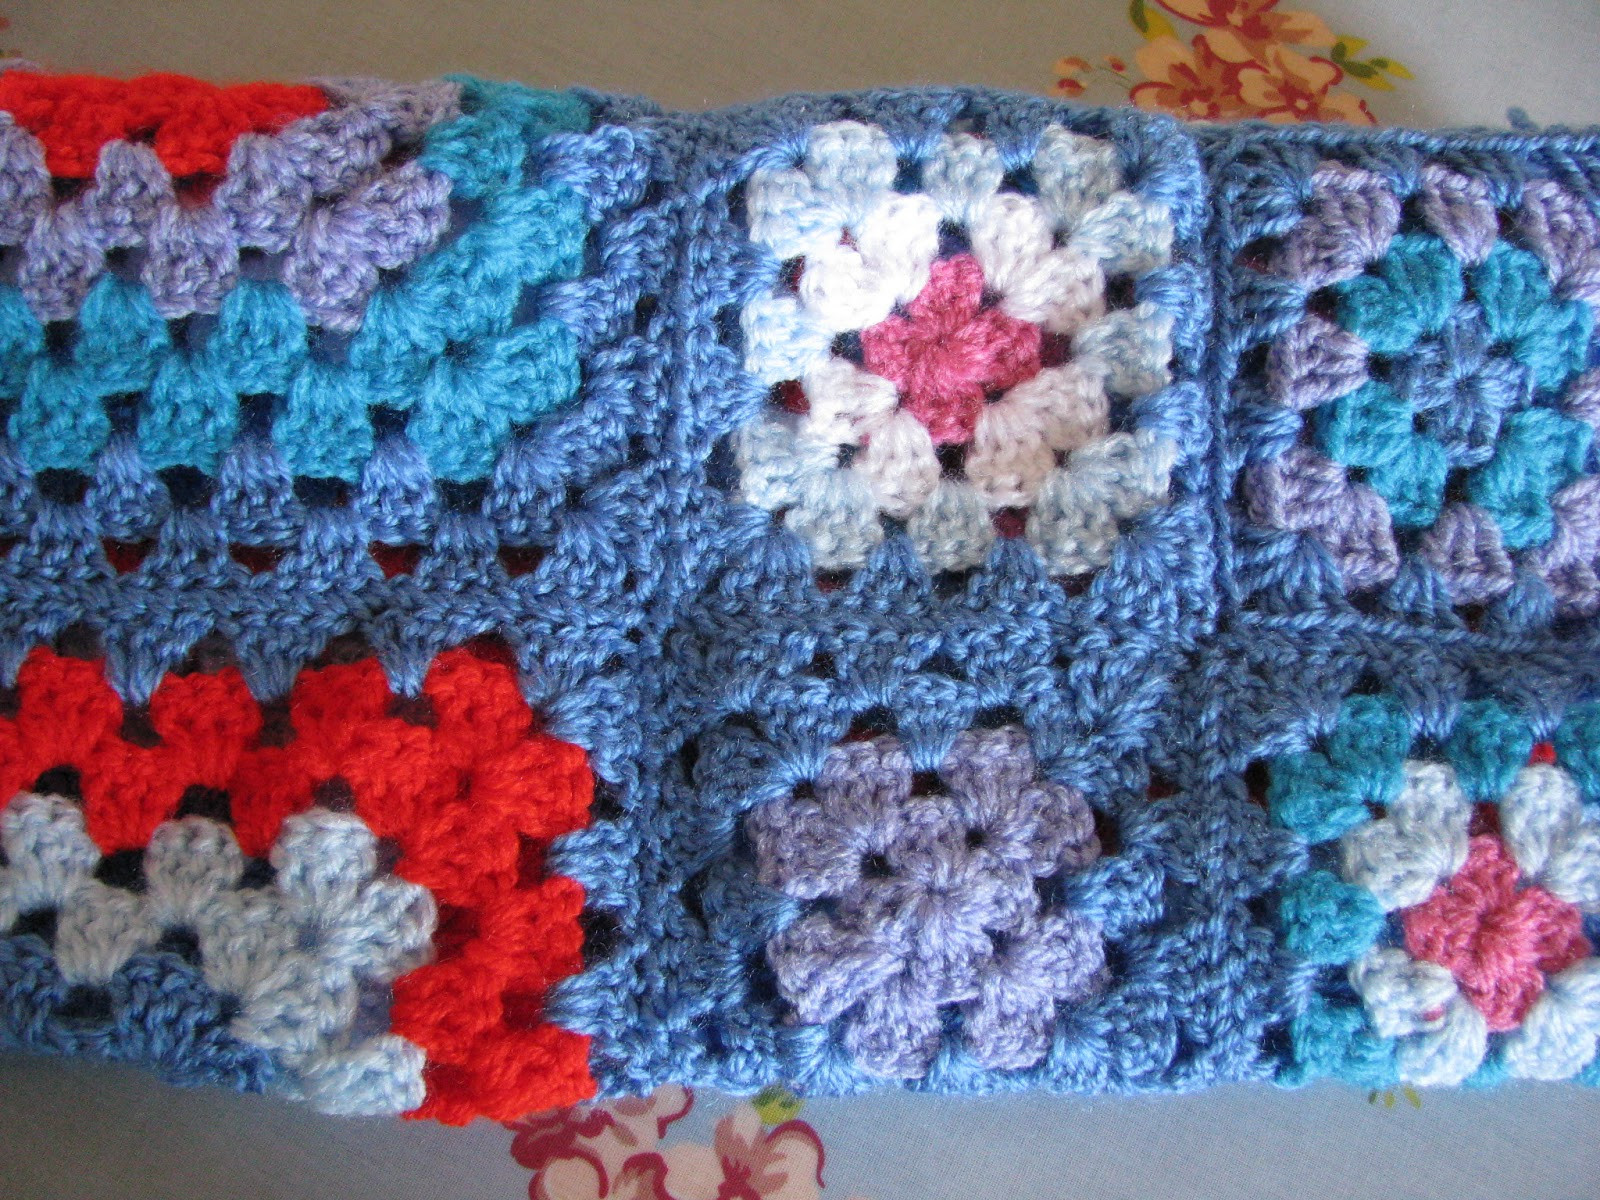 New Crochet Granny Square Crochet Sites Of Incredible 47 Images Crochet Sites